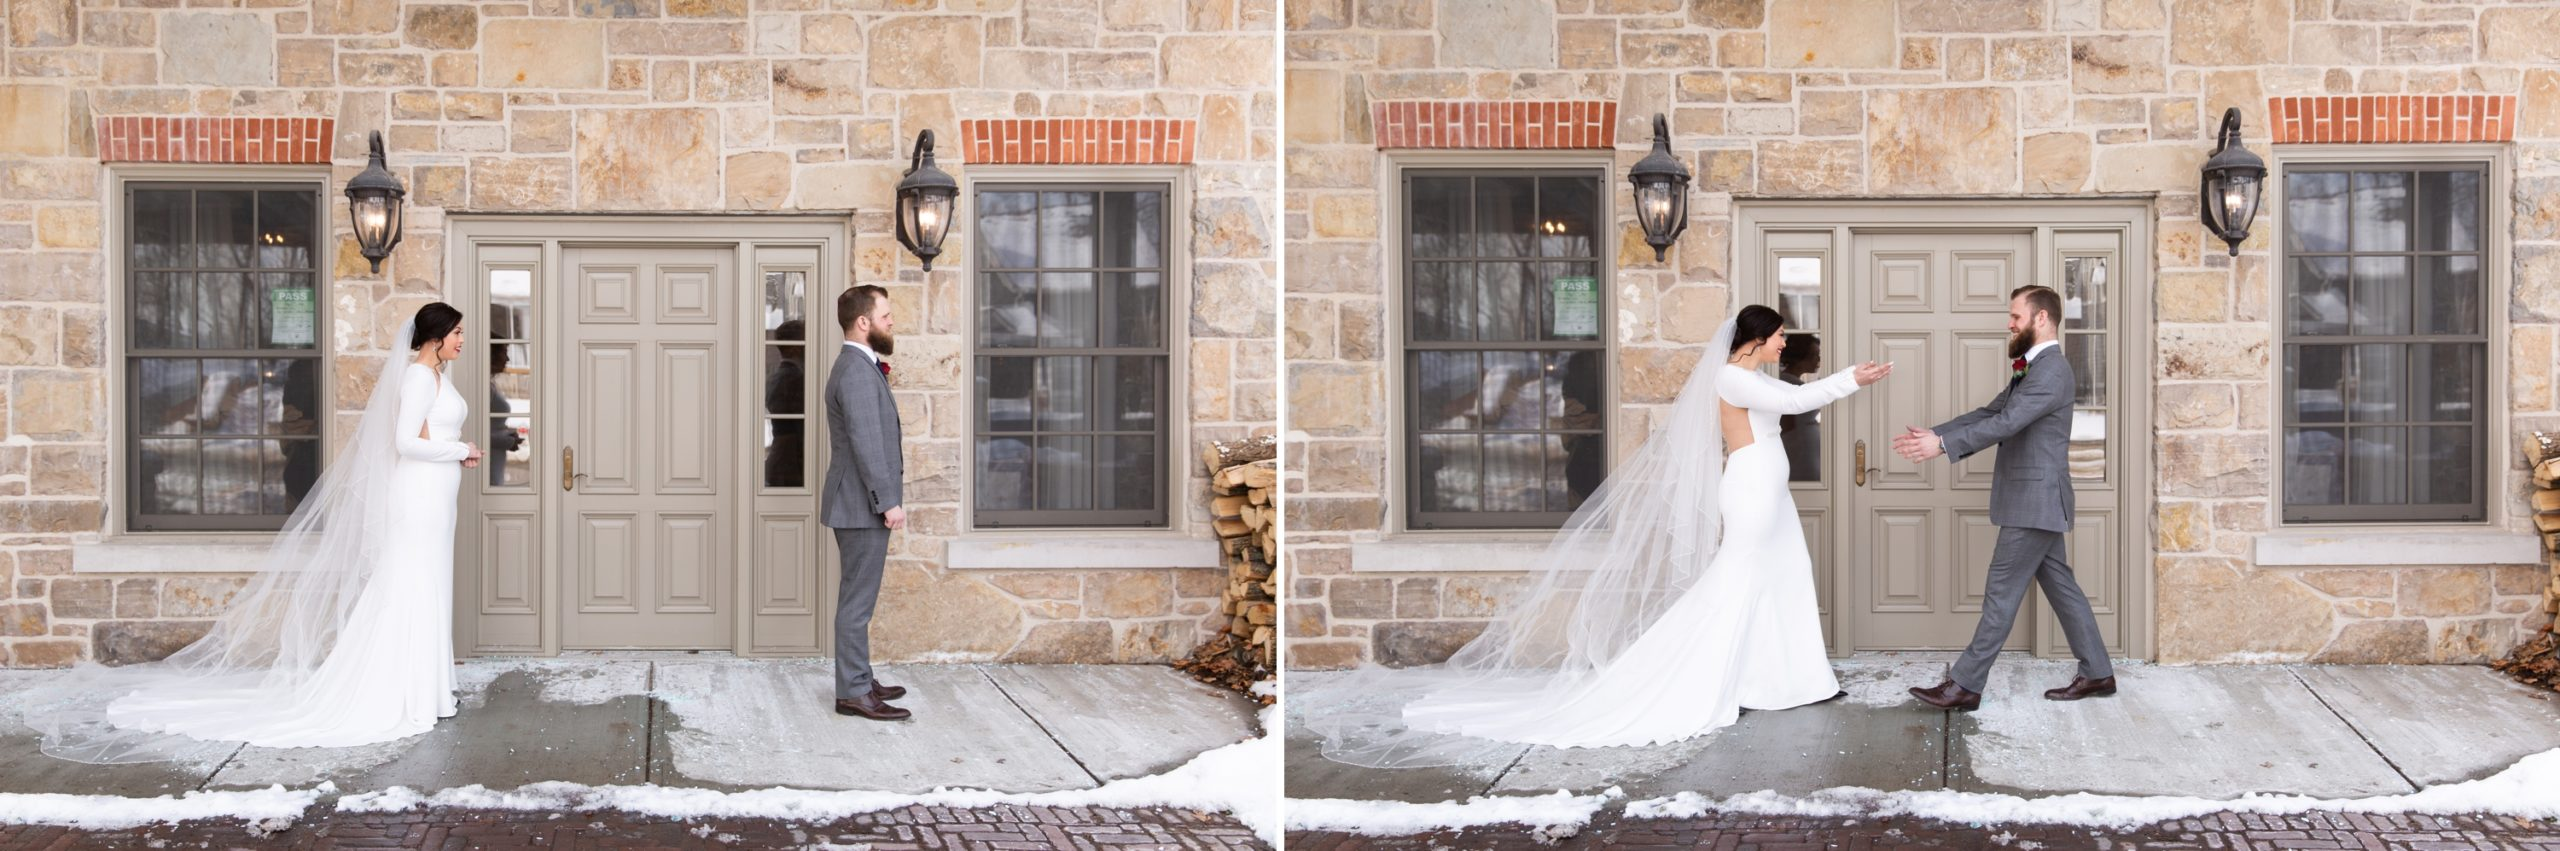 First Look Winter Wedding, Ancaster, Hamilton, Zsuzsi Pal Photography Reveal